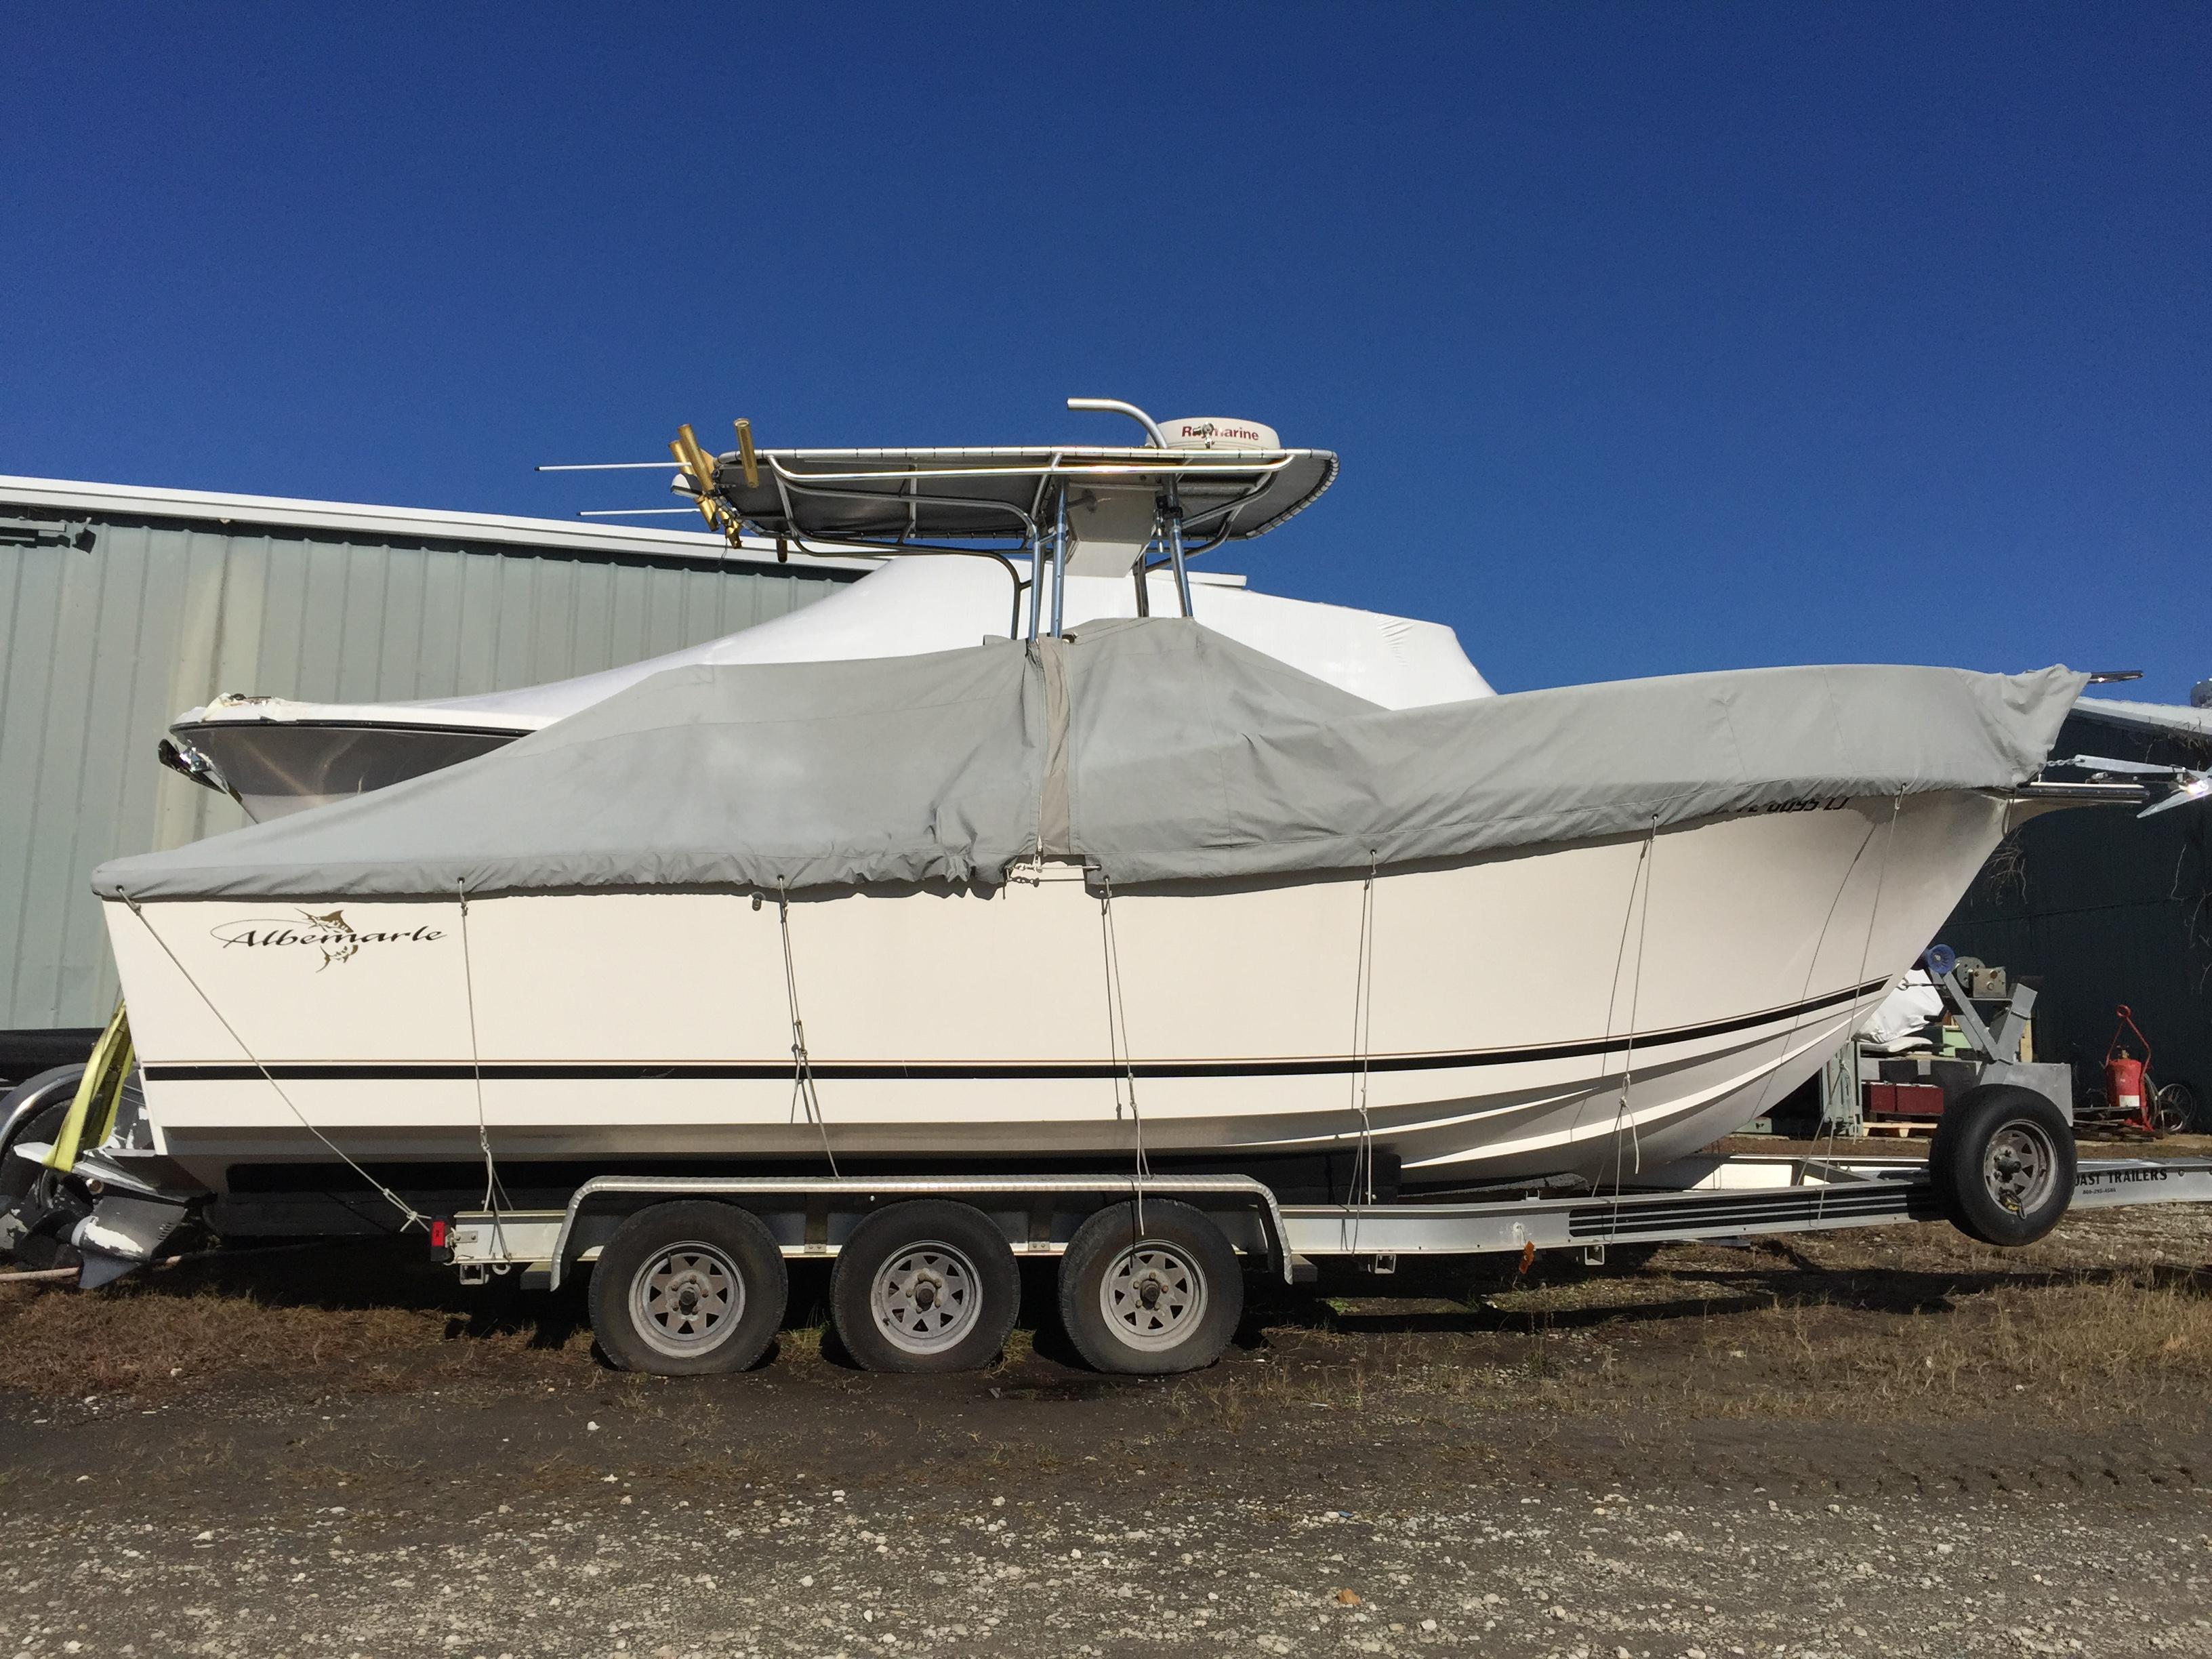 albemarle single personals Press to search craigslist save search options close boats - by owner all owner dealer search titles only  favorite this post may 28 1994 albemarle 24ft.